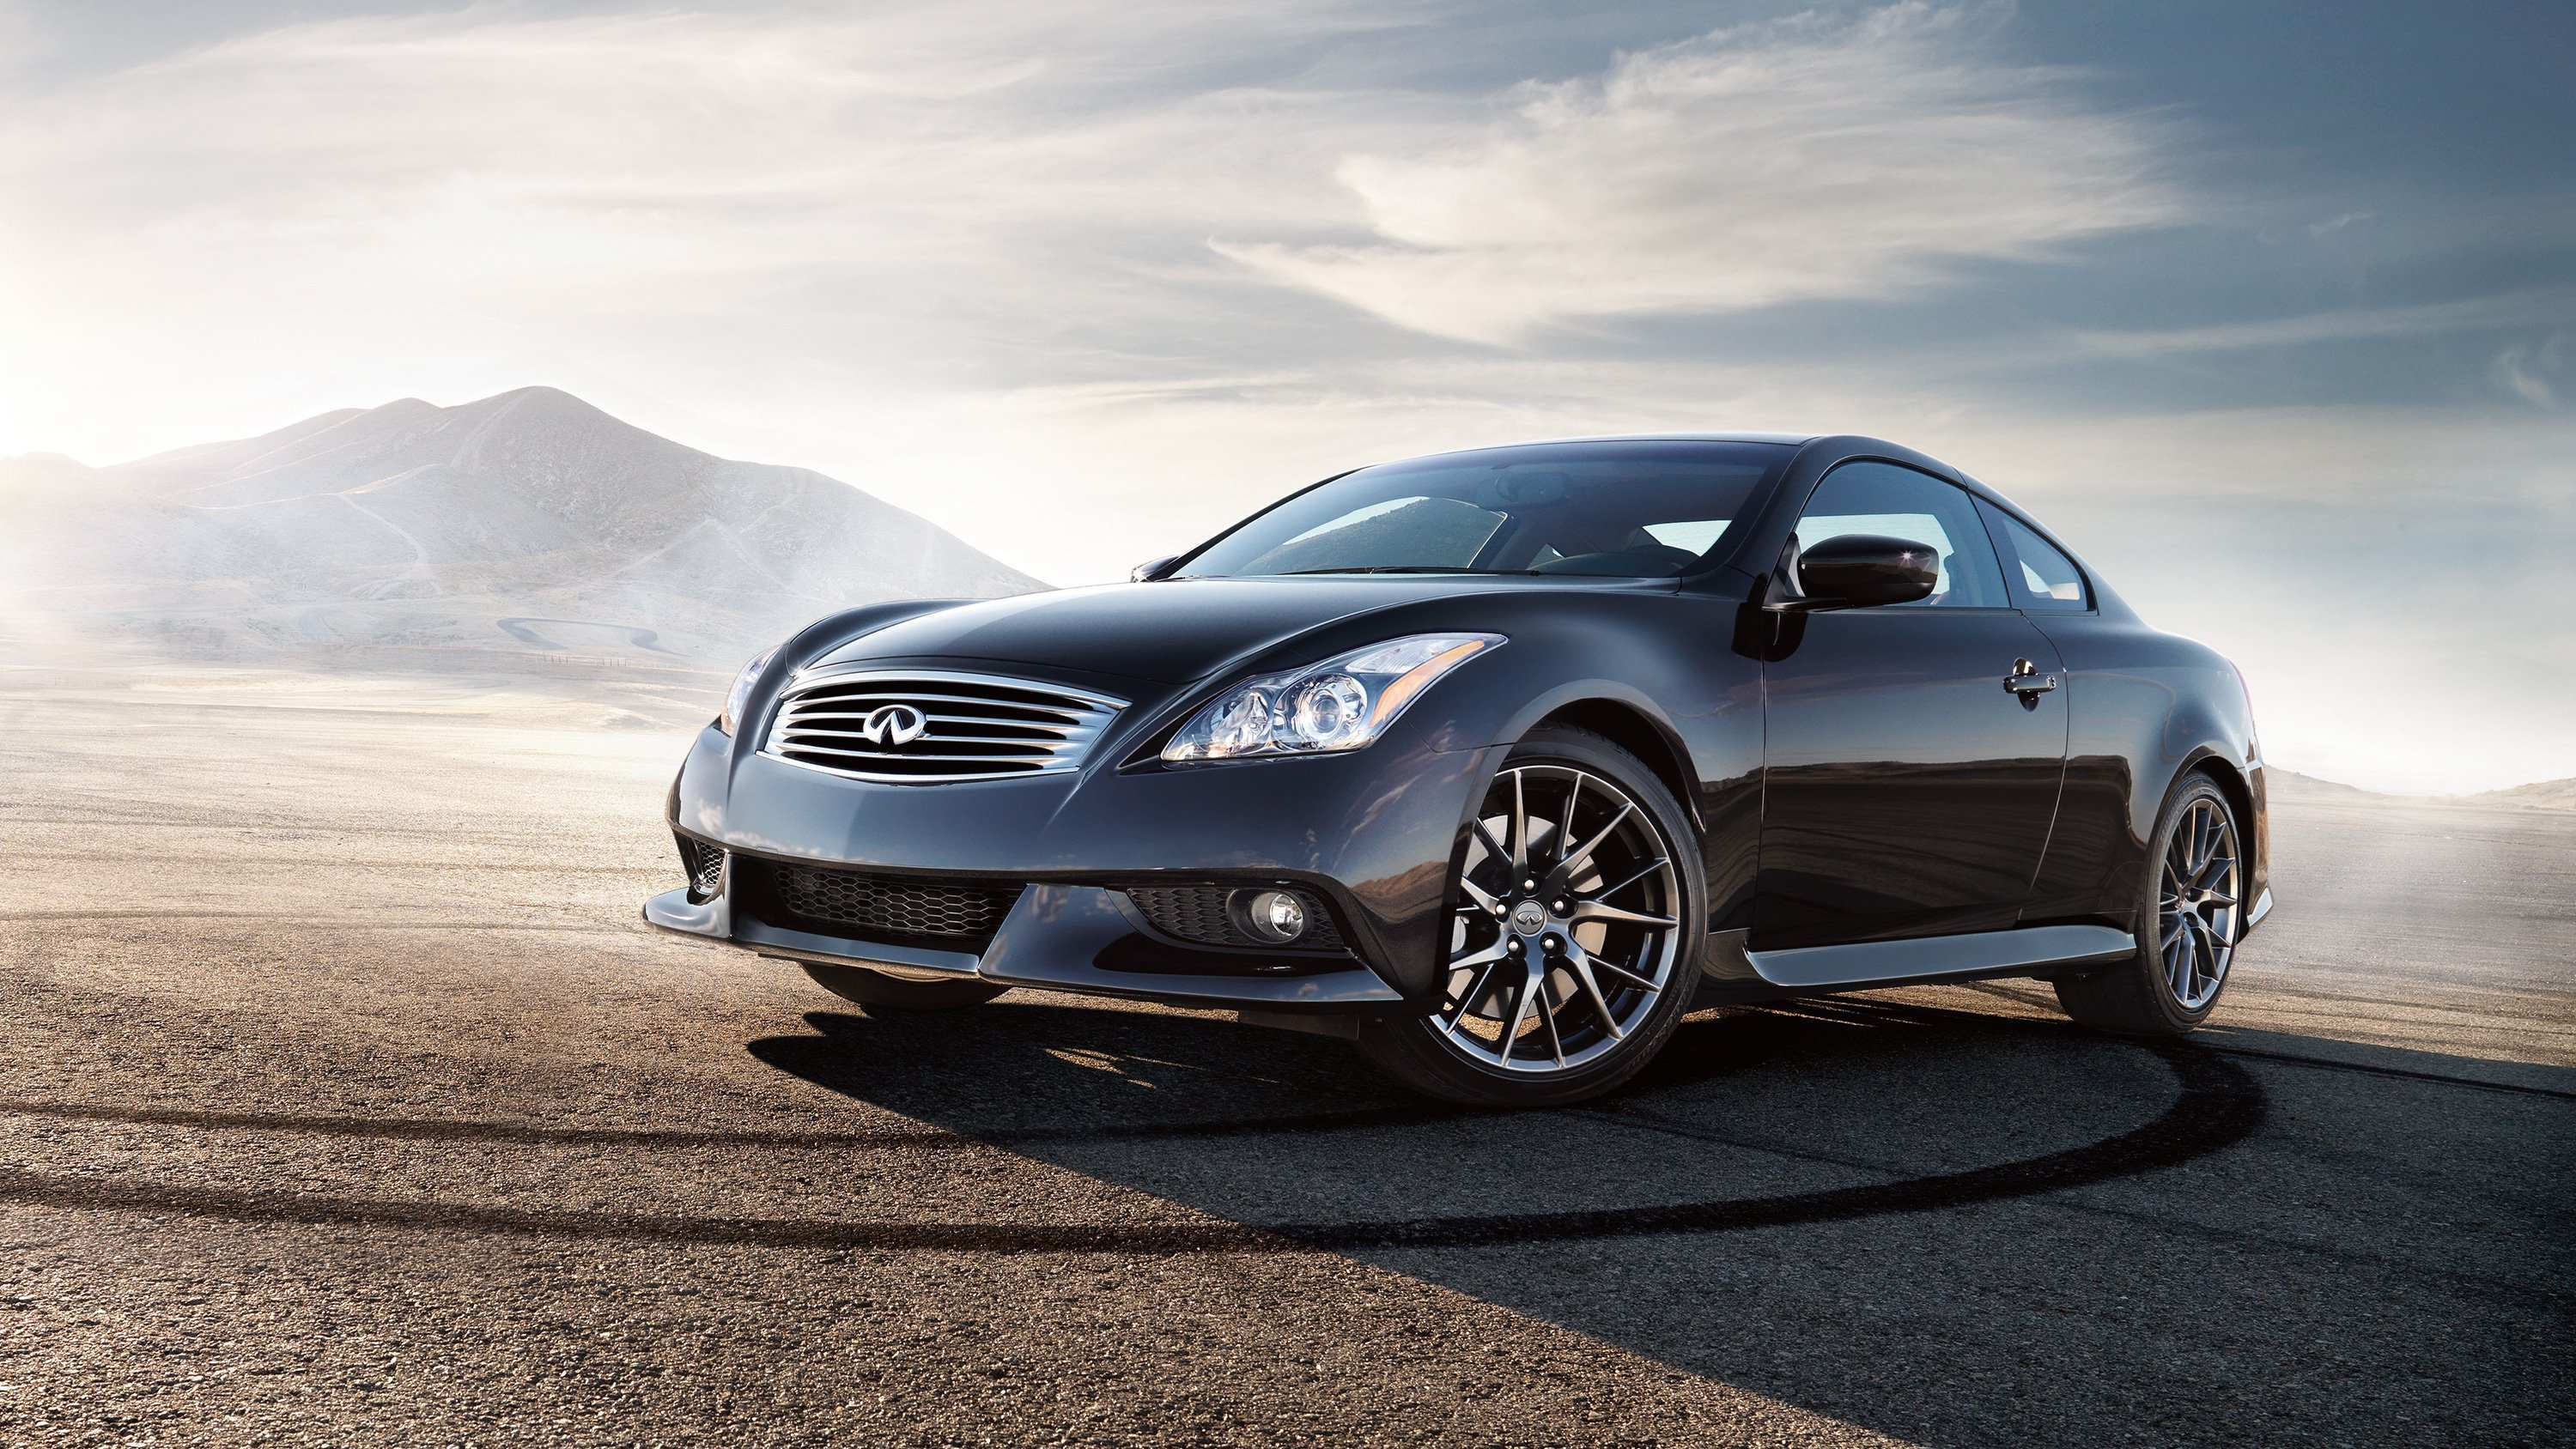 96 Best 2020 Infiniti Q60 Coupe Ipl Price And Review